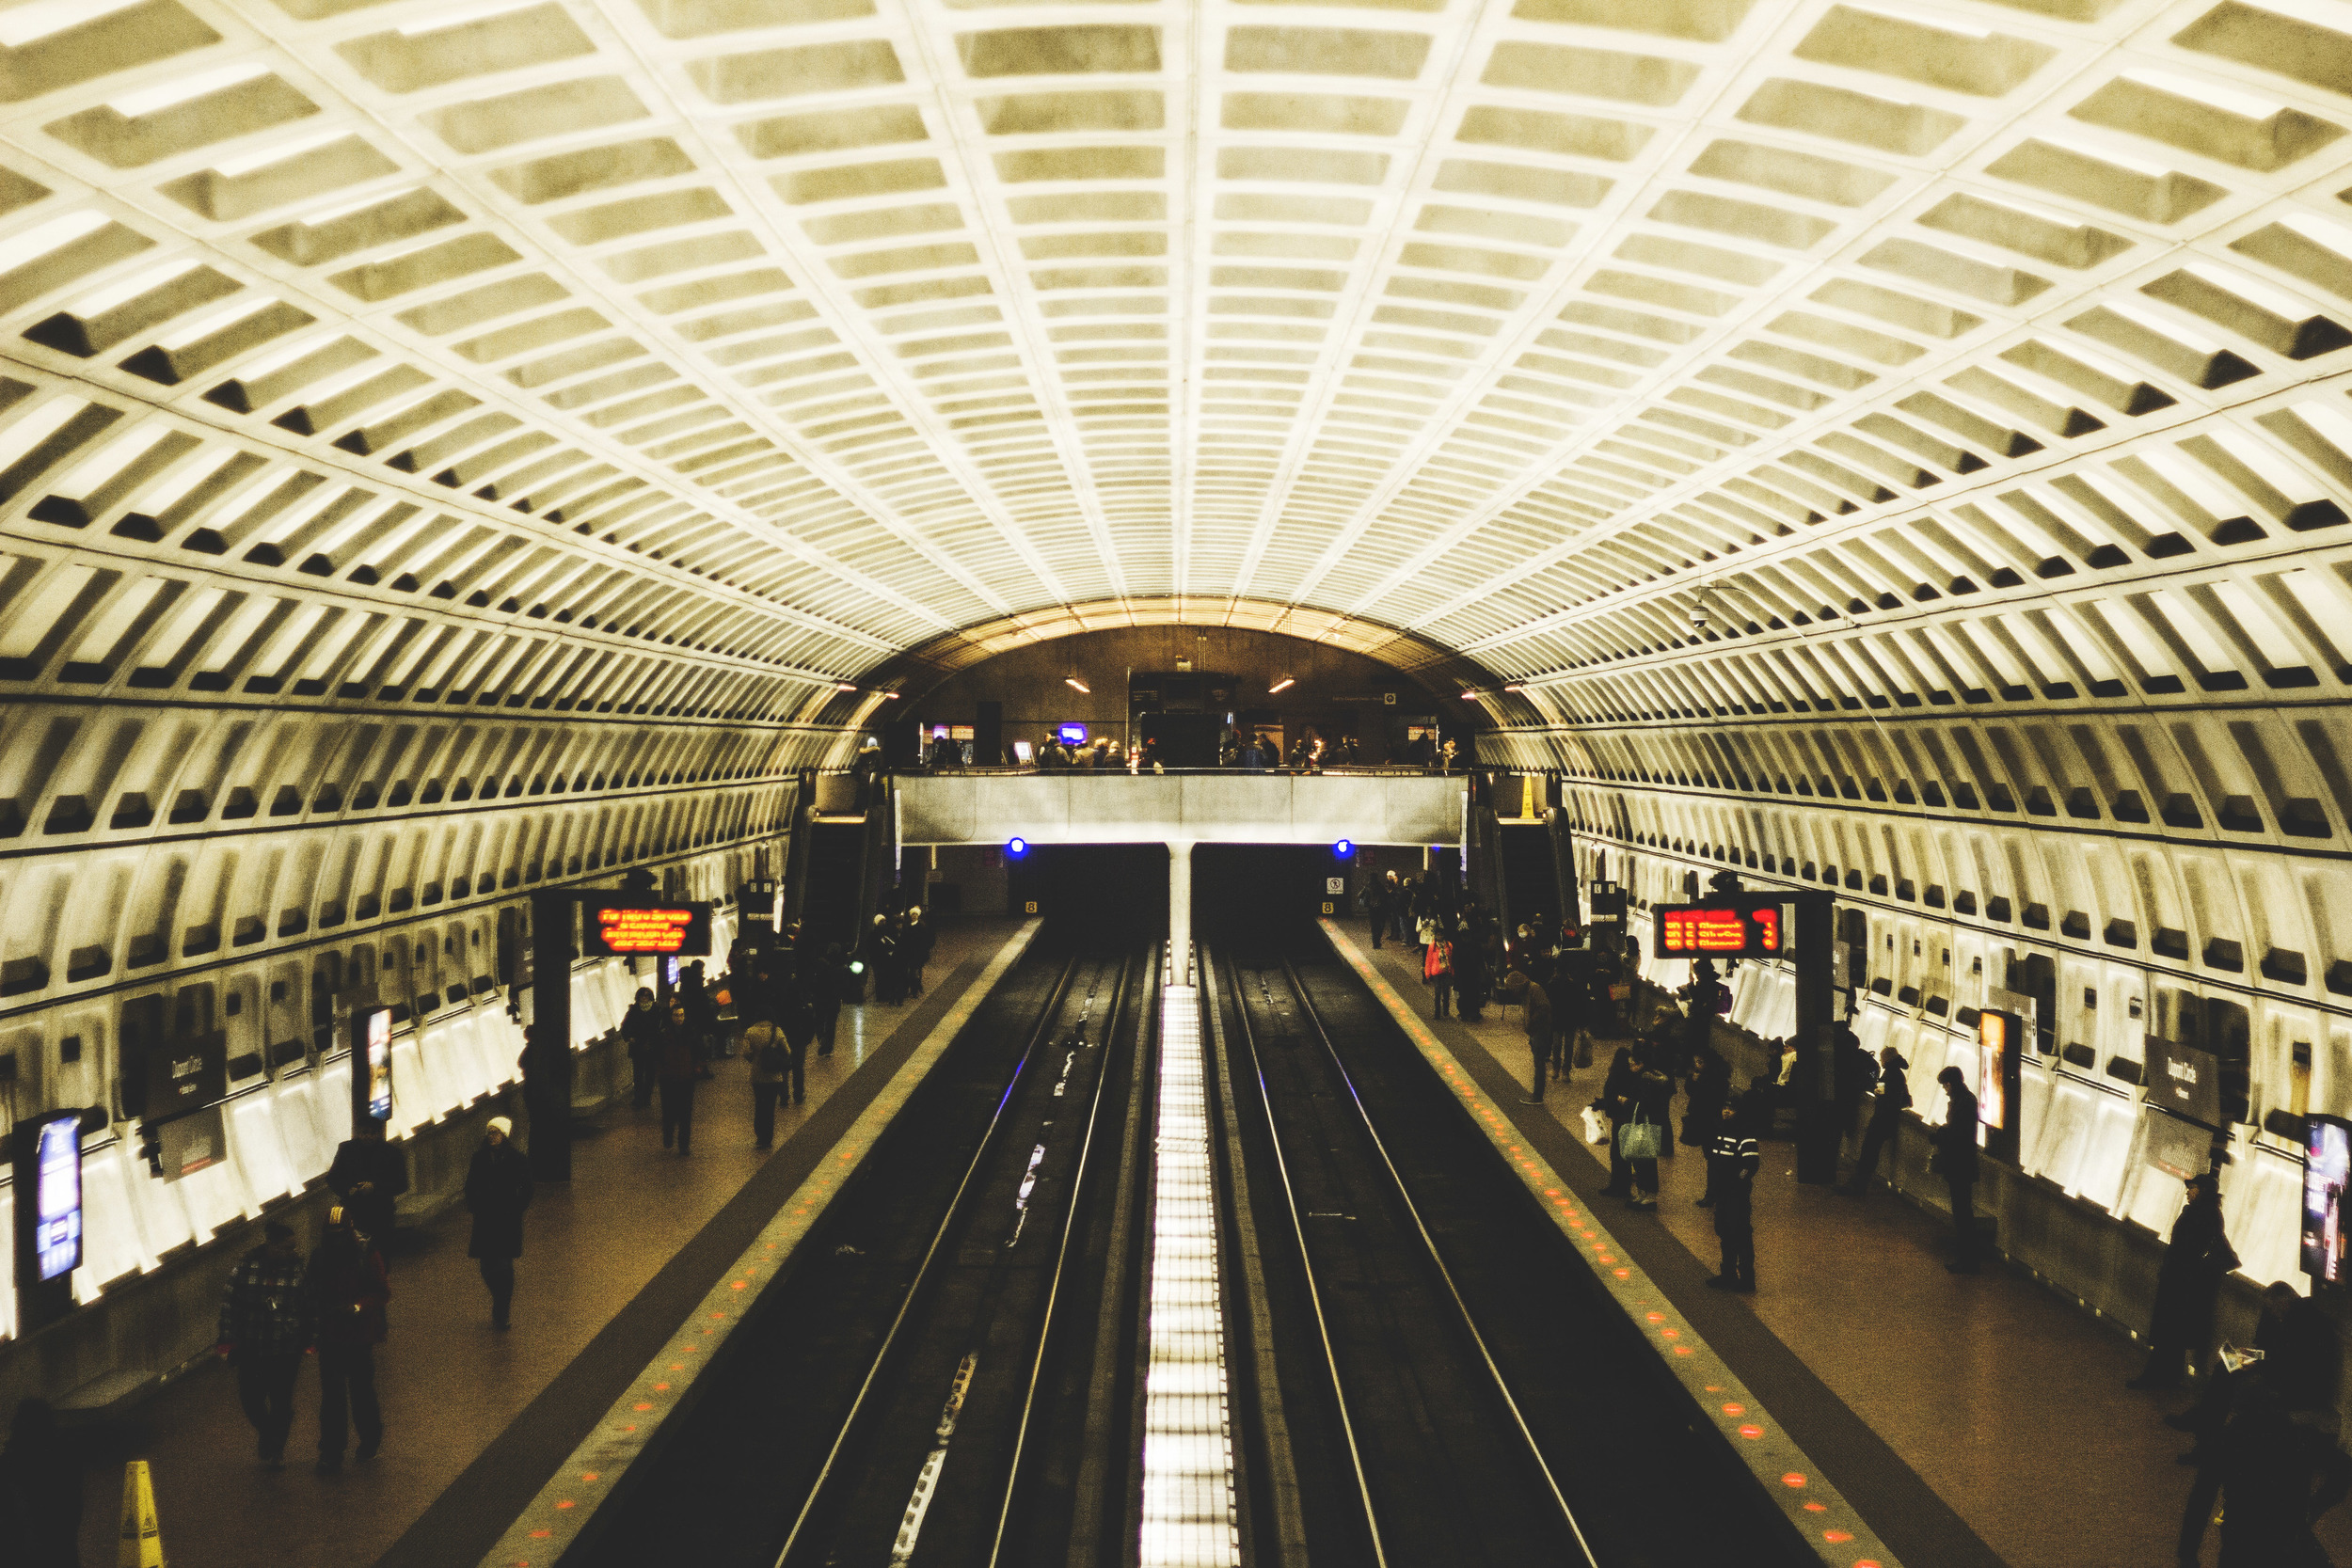 The Dupont Circle stop on the DC Metro Red Line.